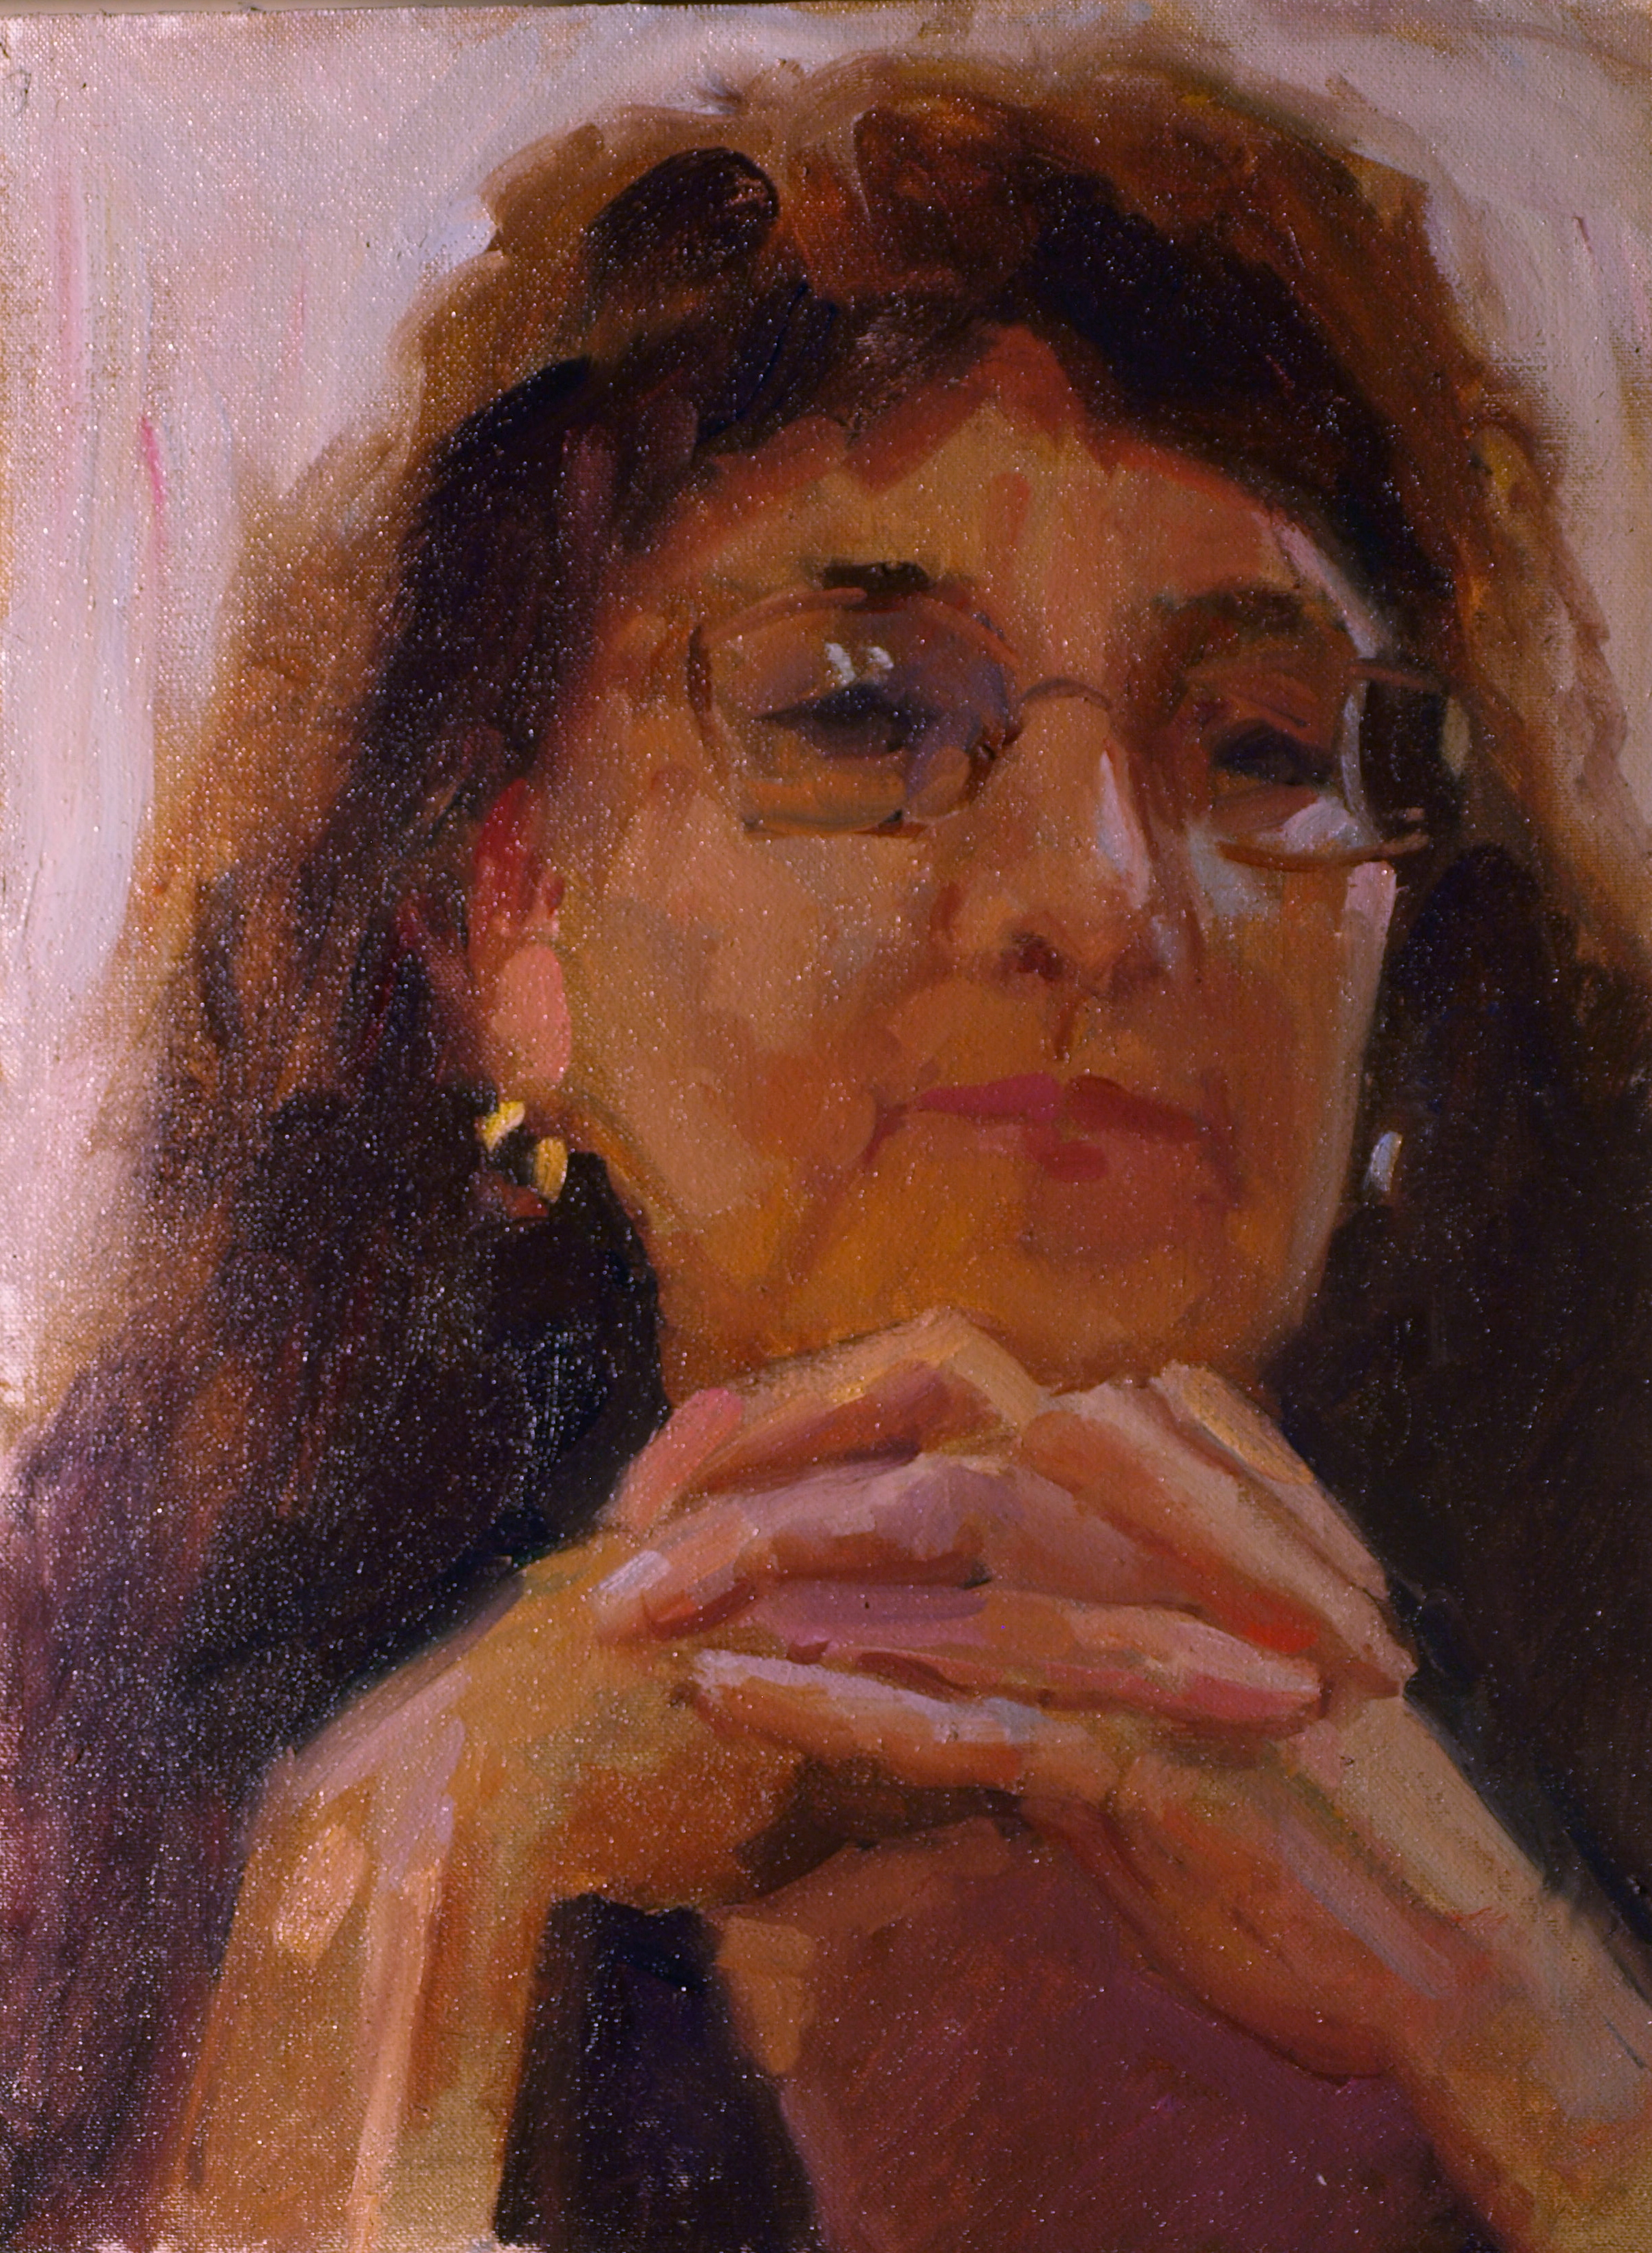 Study - Head and Hands, Oil on Canvas on Panel, 16 x 12 Inches, by Susan Grisell, $300